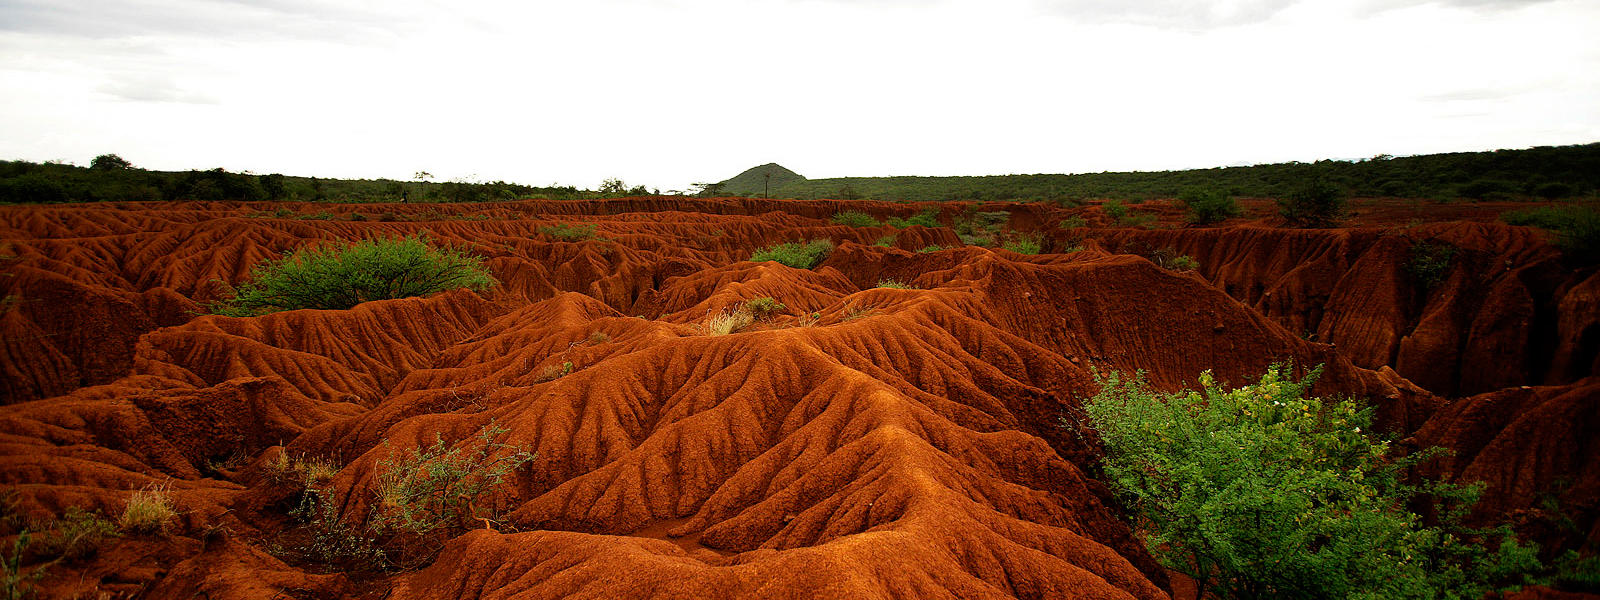 Soil erosion and degradation threats wwf for Meaning of soil resources